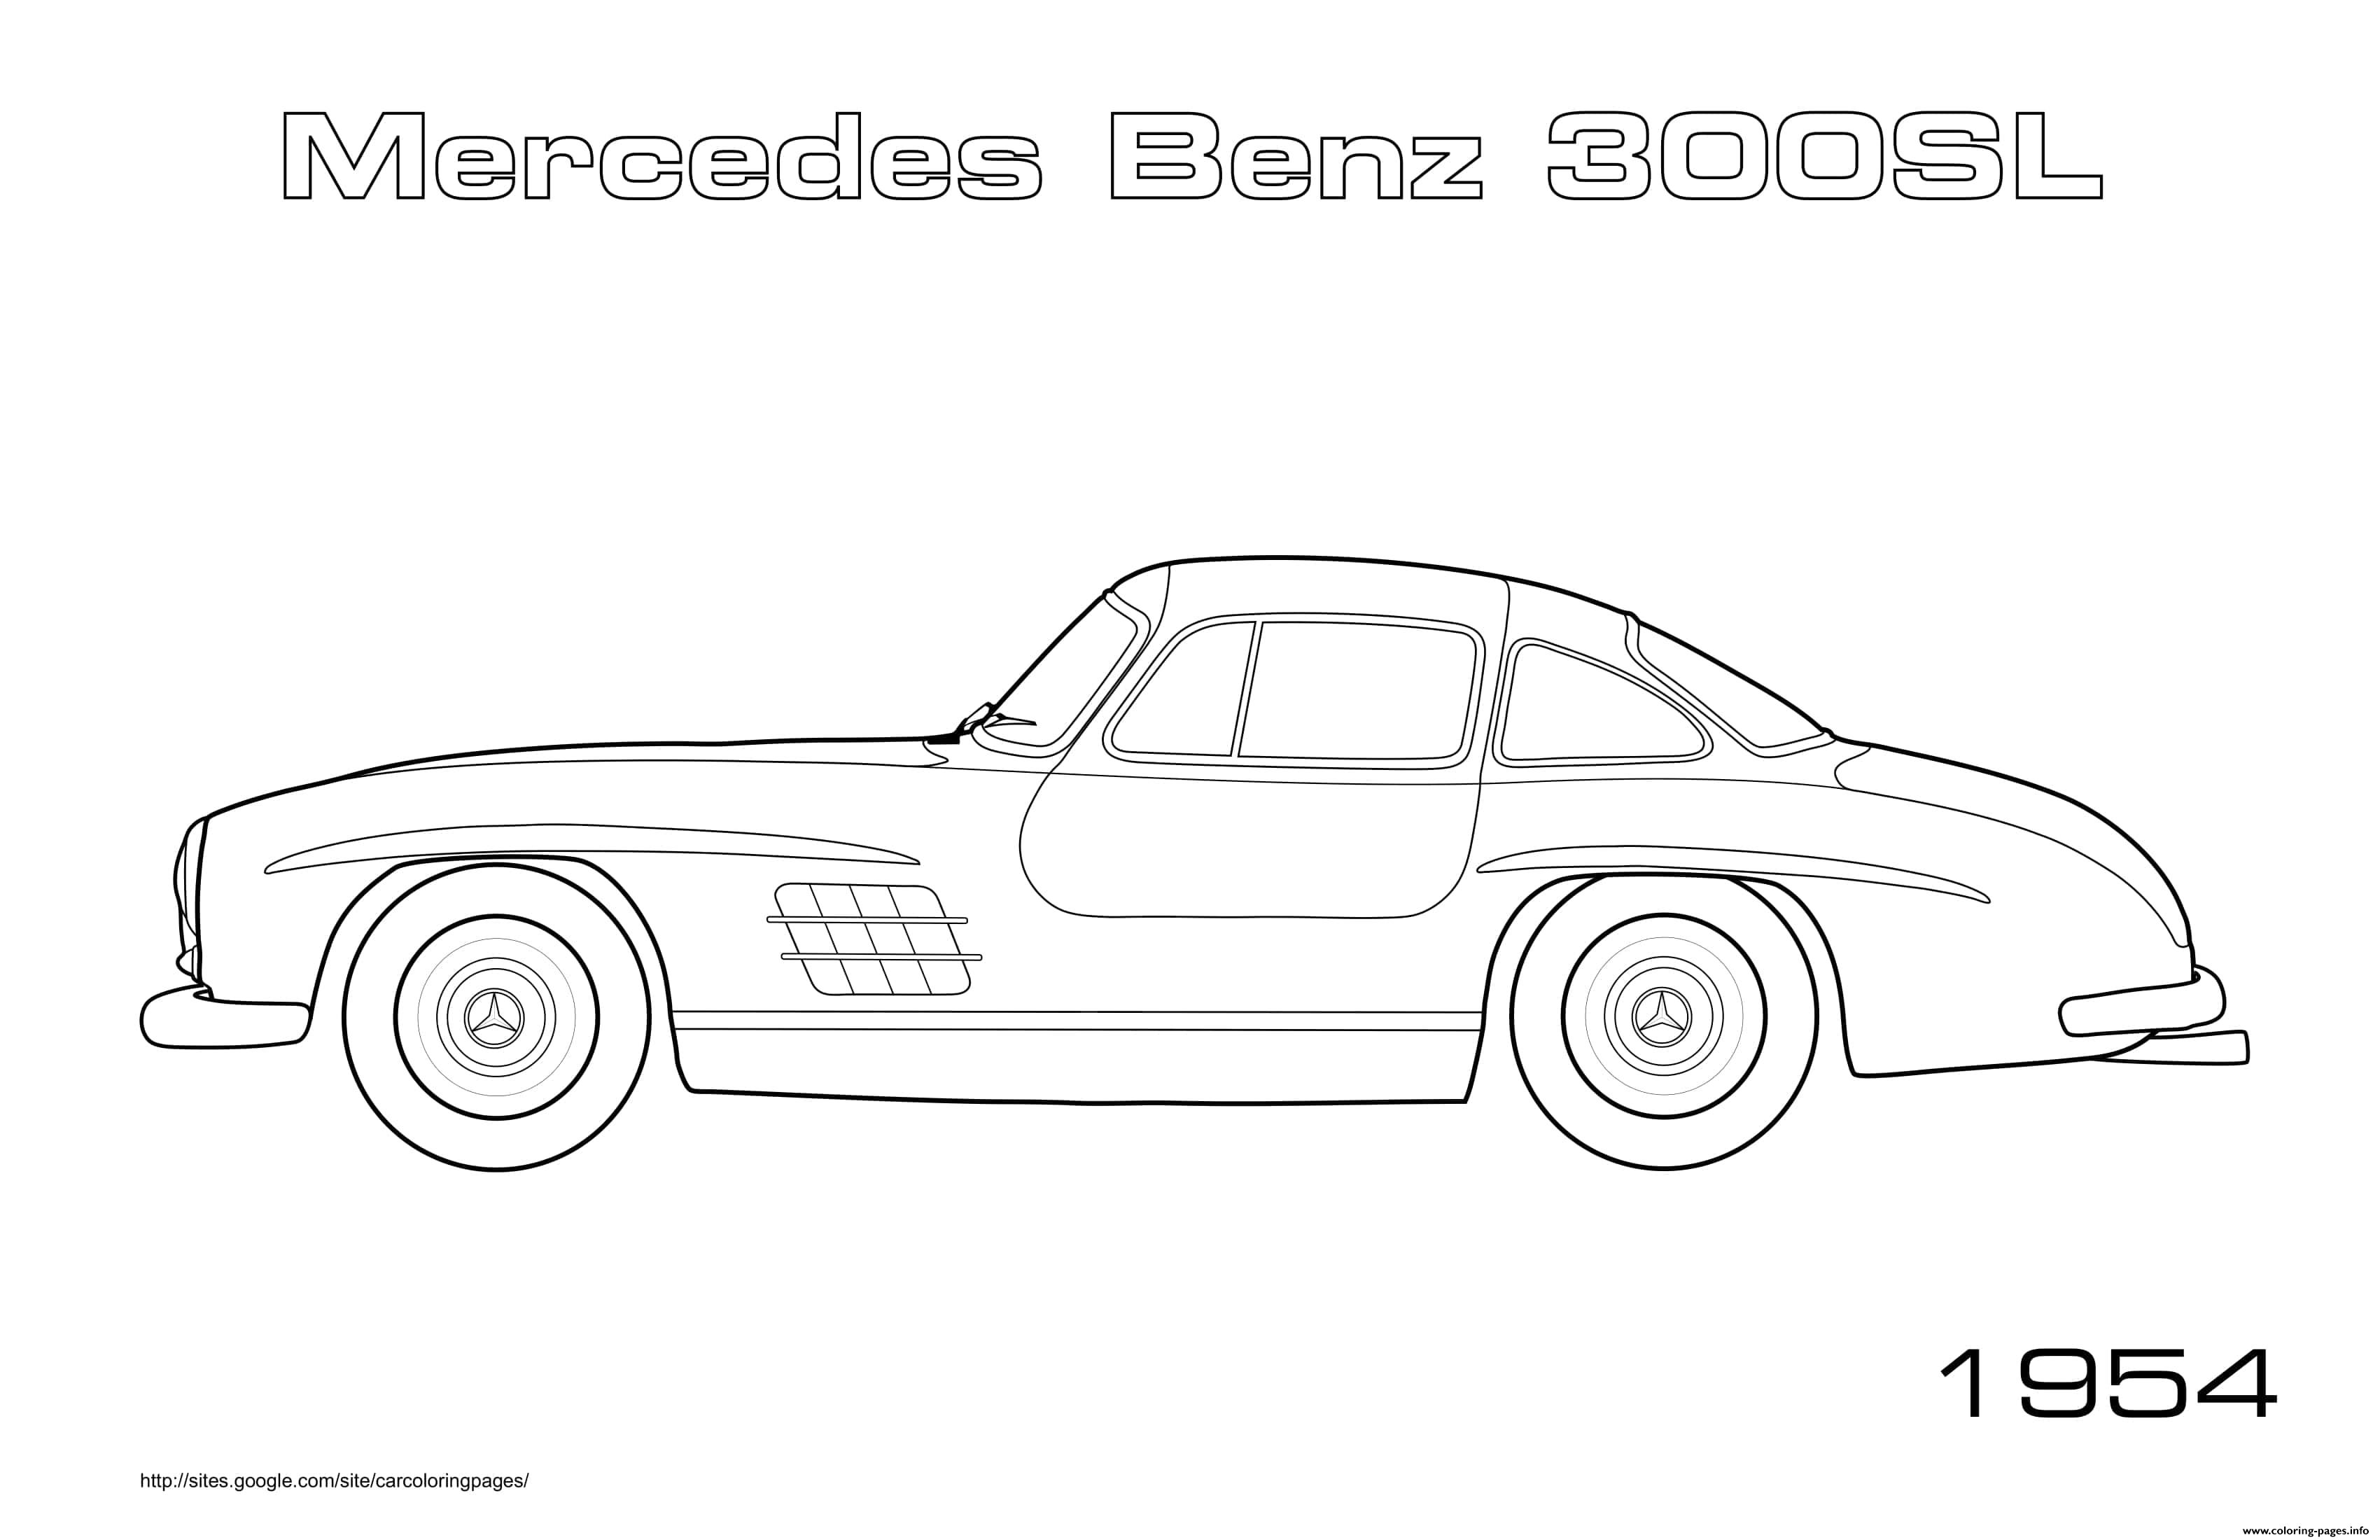 Car Coloring Pages – coloring.rocks! | 2200x3400